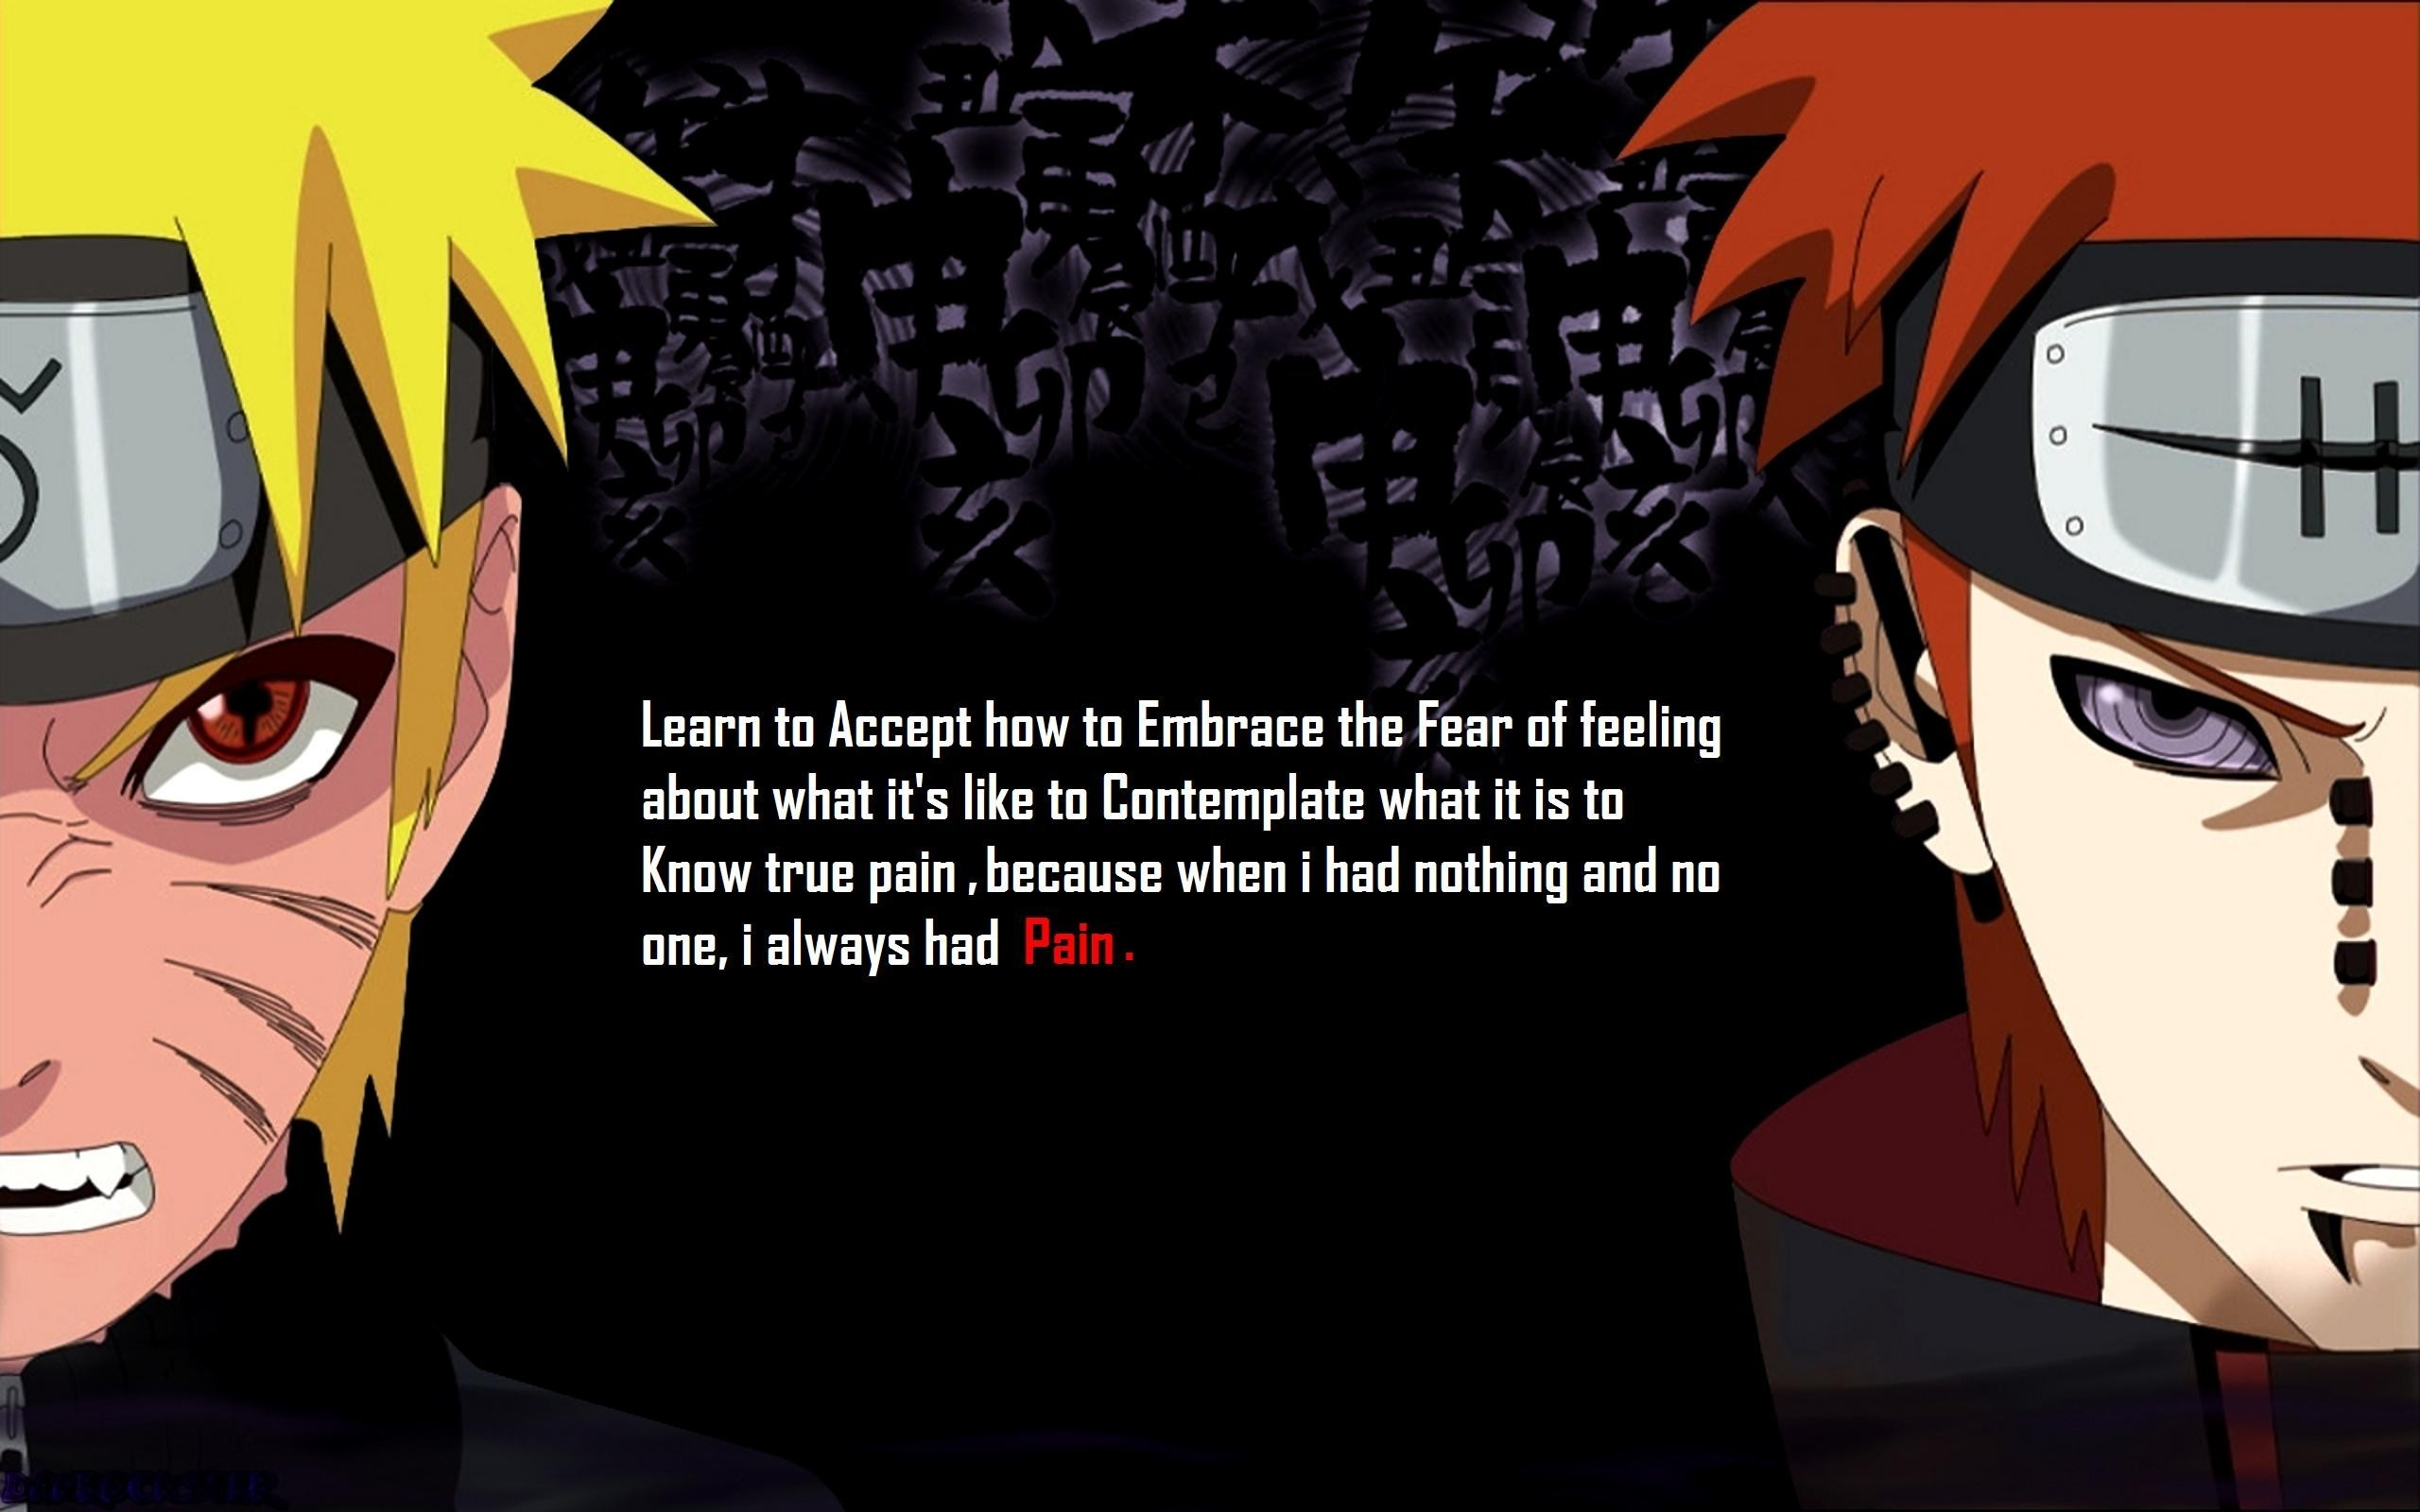 naruto shippuden hd wallpapers (69+ images)